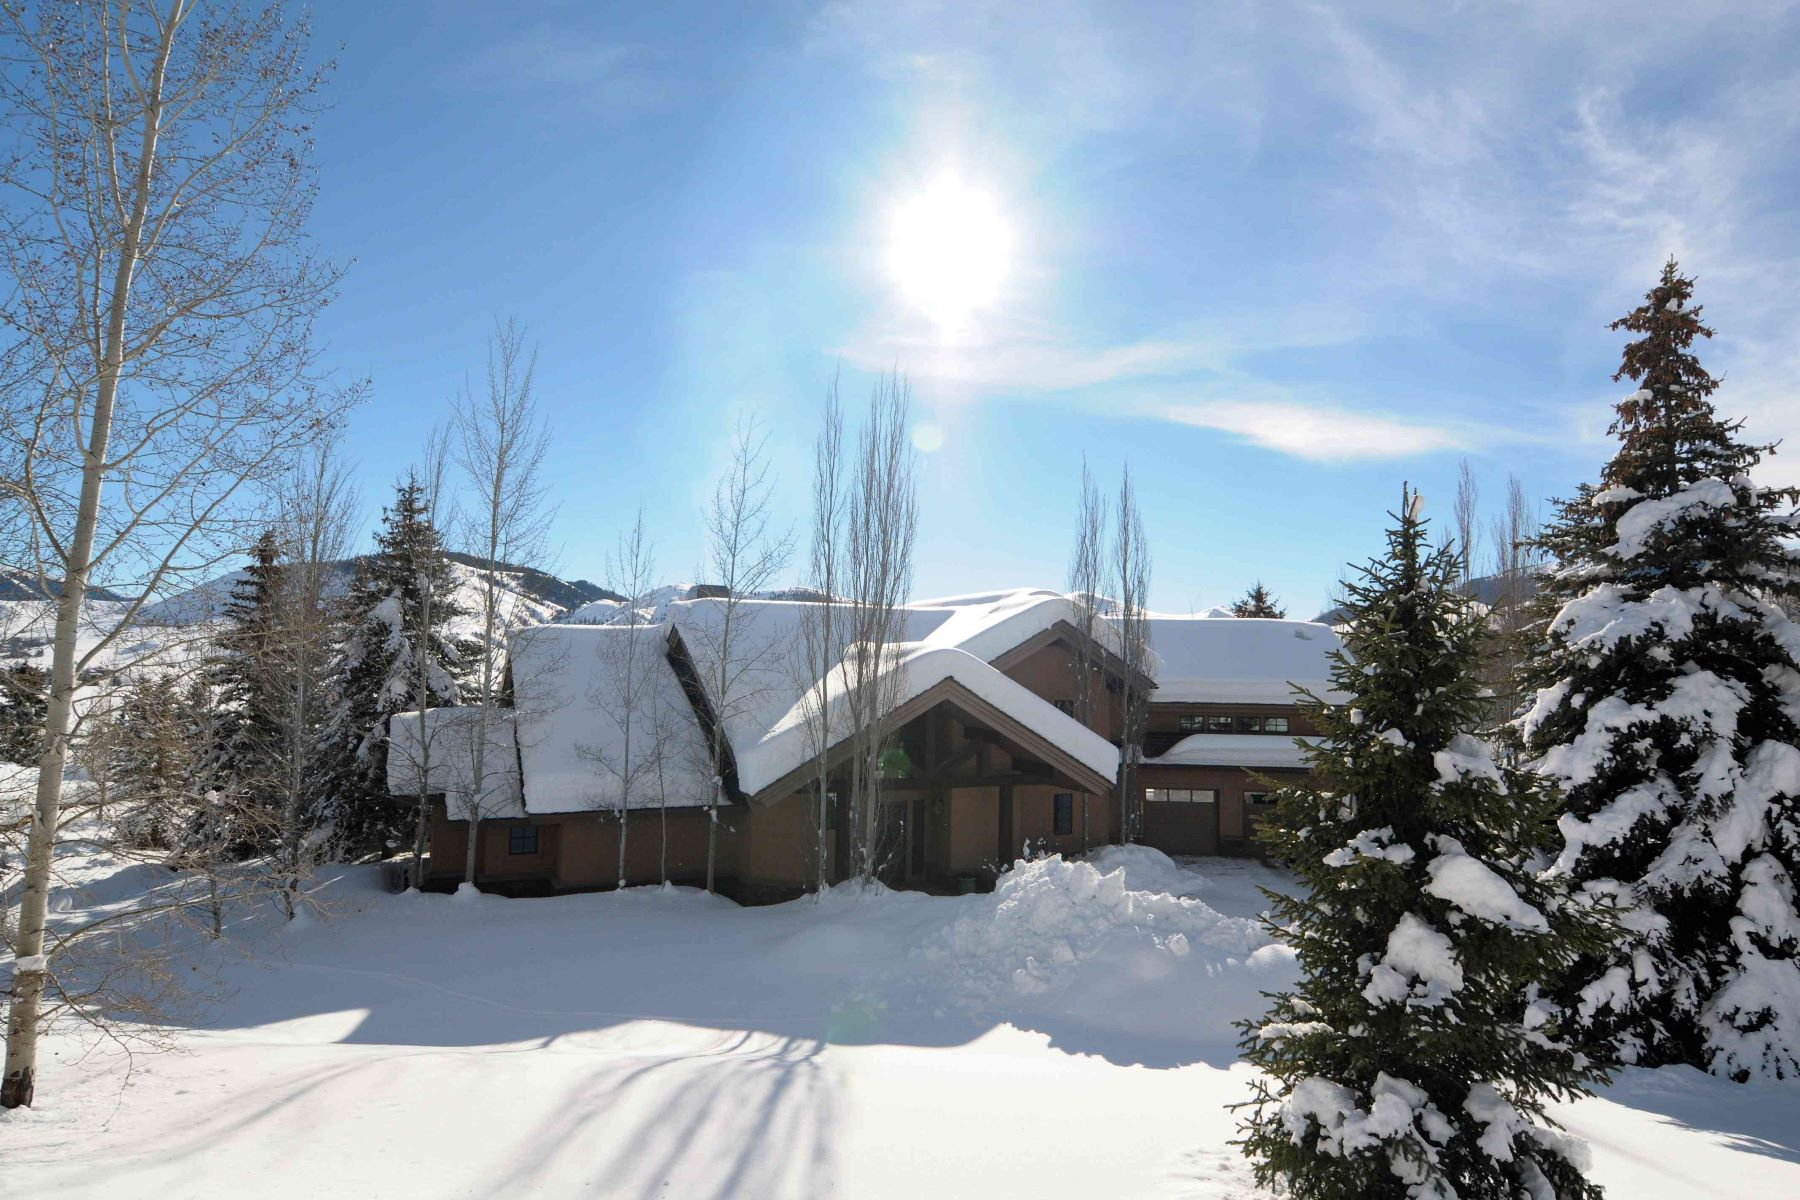 Casa Unifamiliar por un Venta en Stunning Panoramic Views 113 Sagewillow Road Sun Valley, Idaho 83353 Estados Unidos